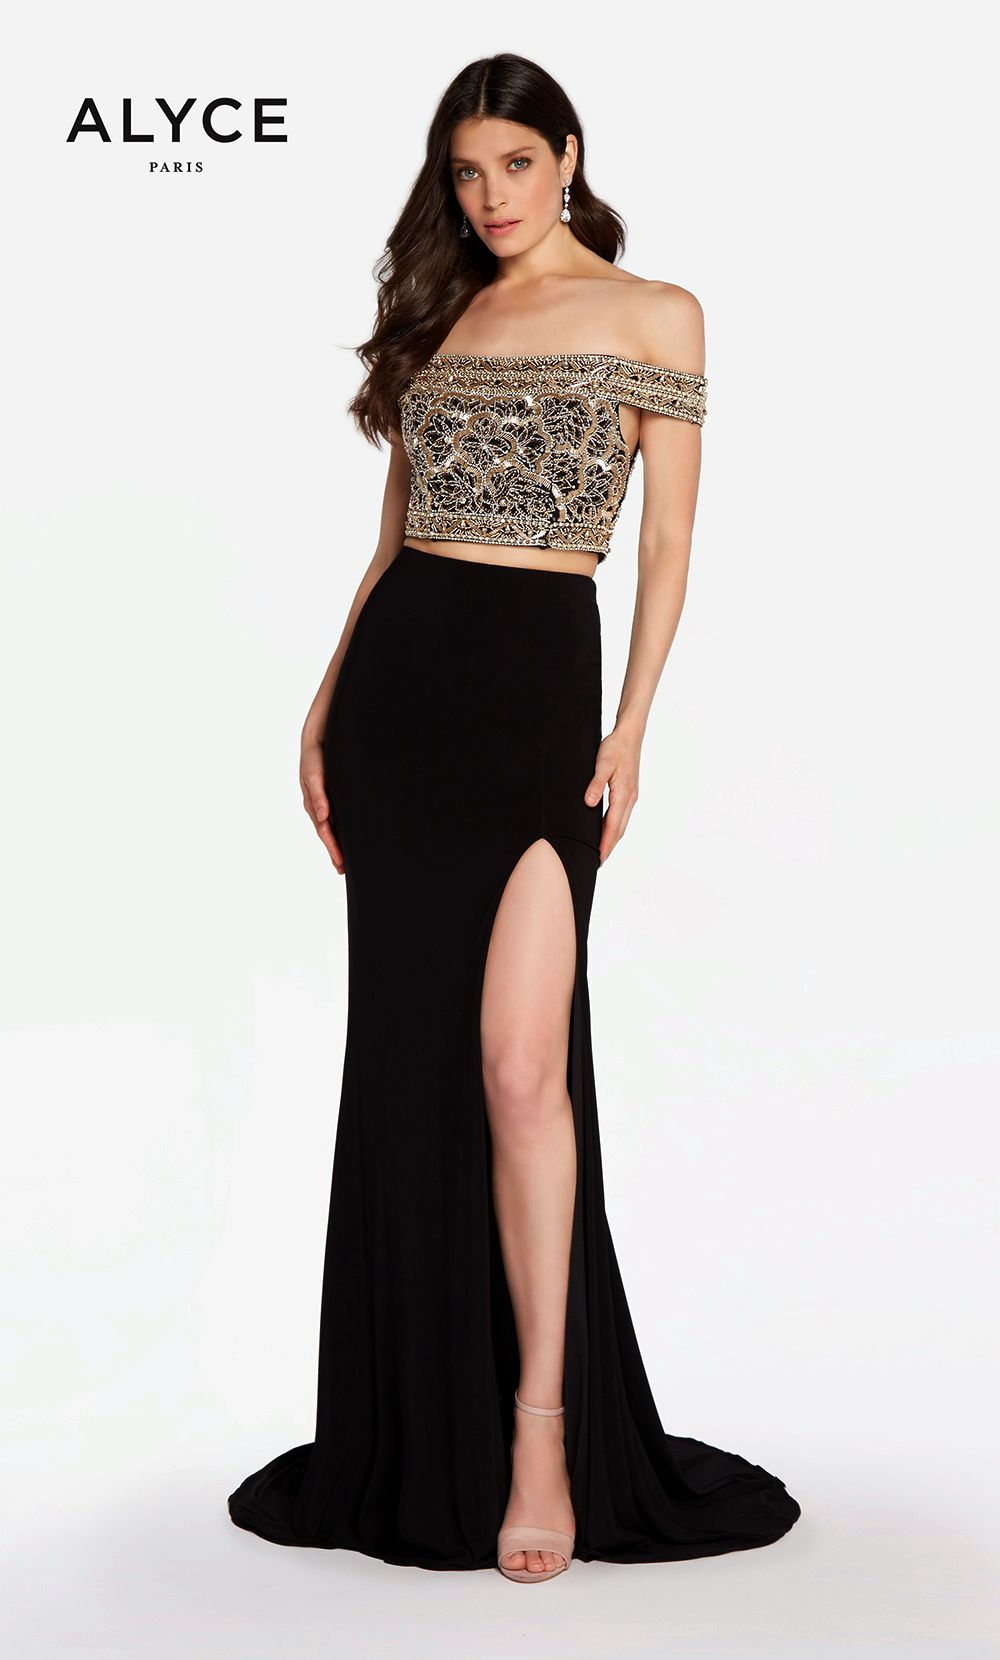 Prom dresses evening dresses by alyce parisucbrueaayucbruelong two